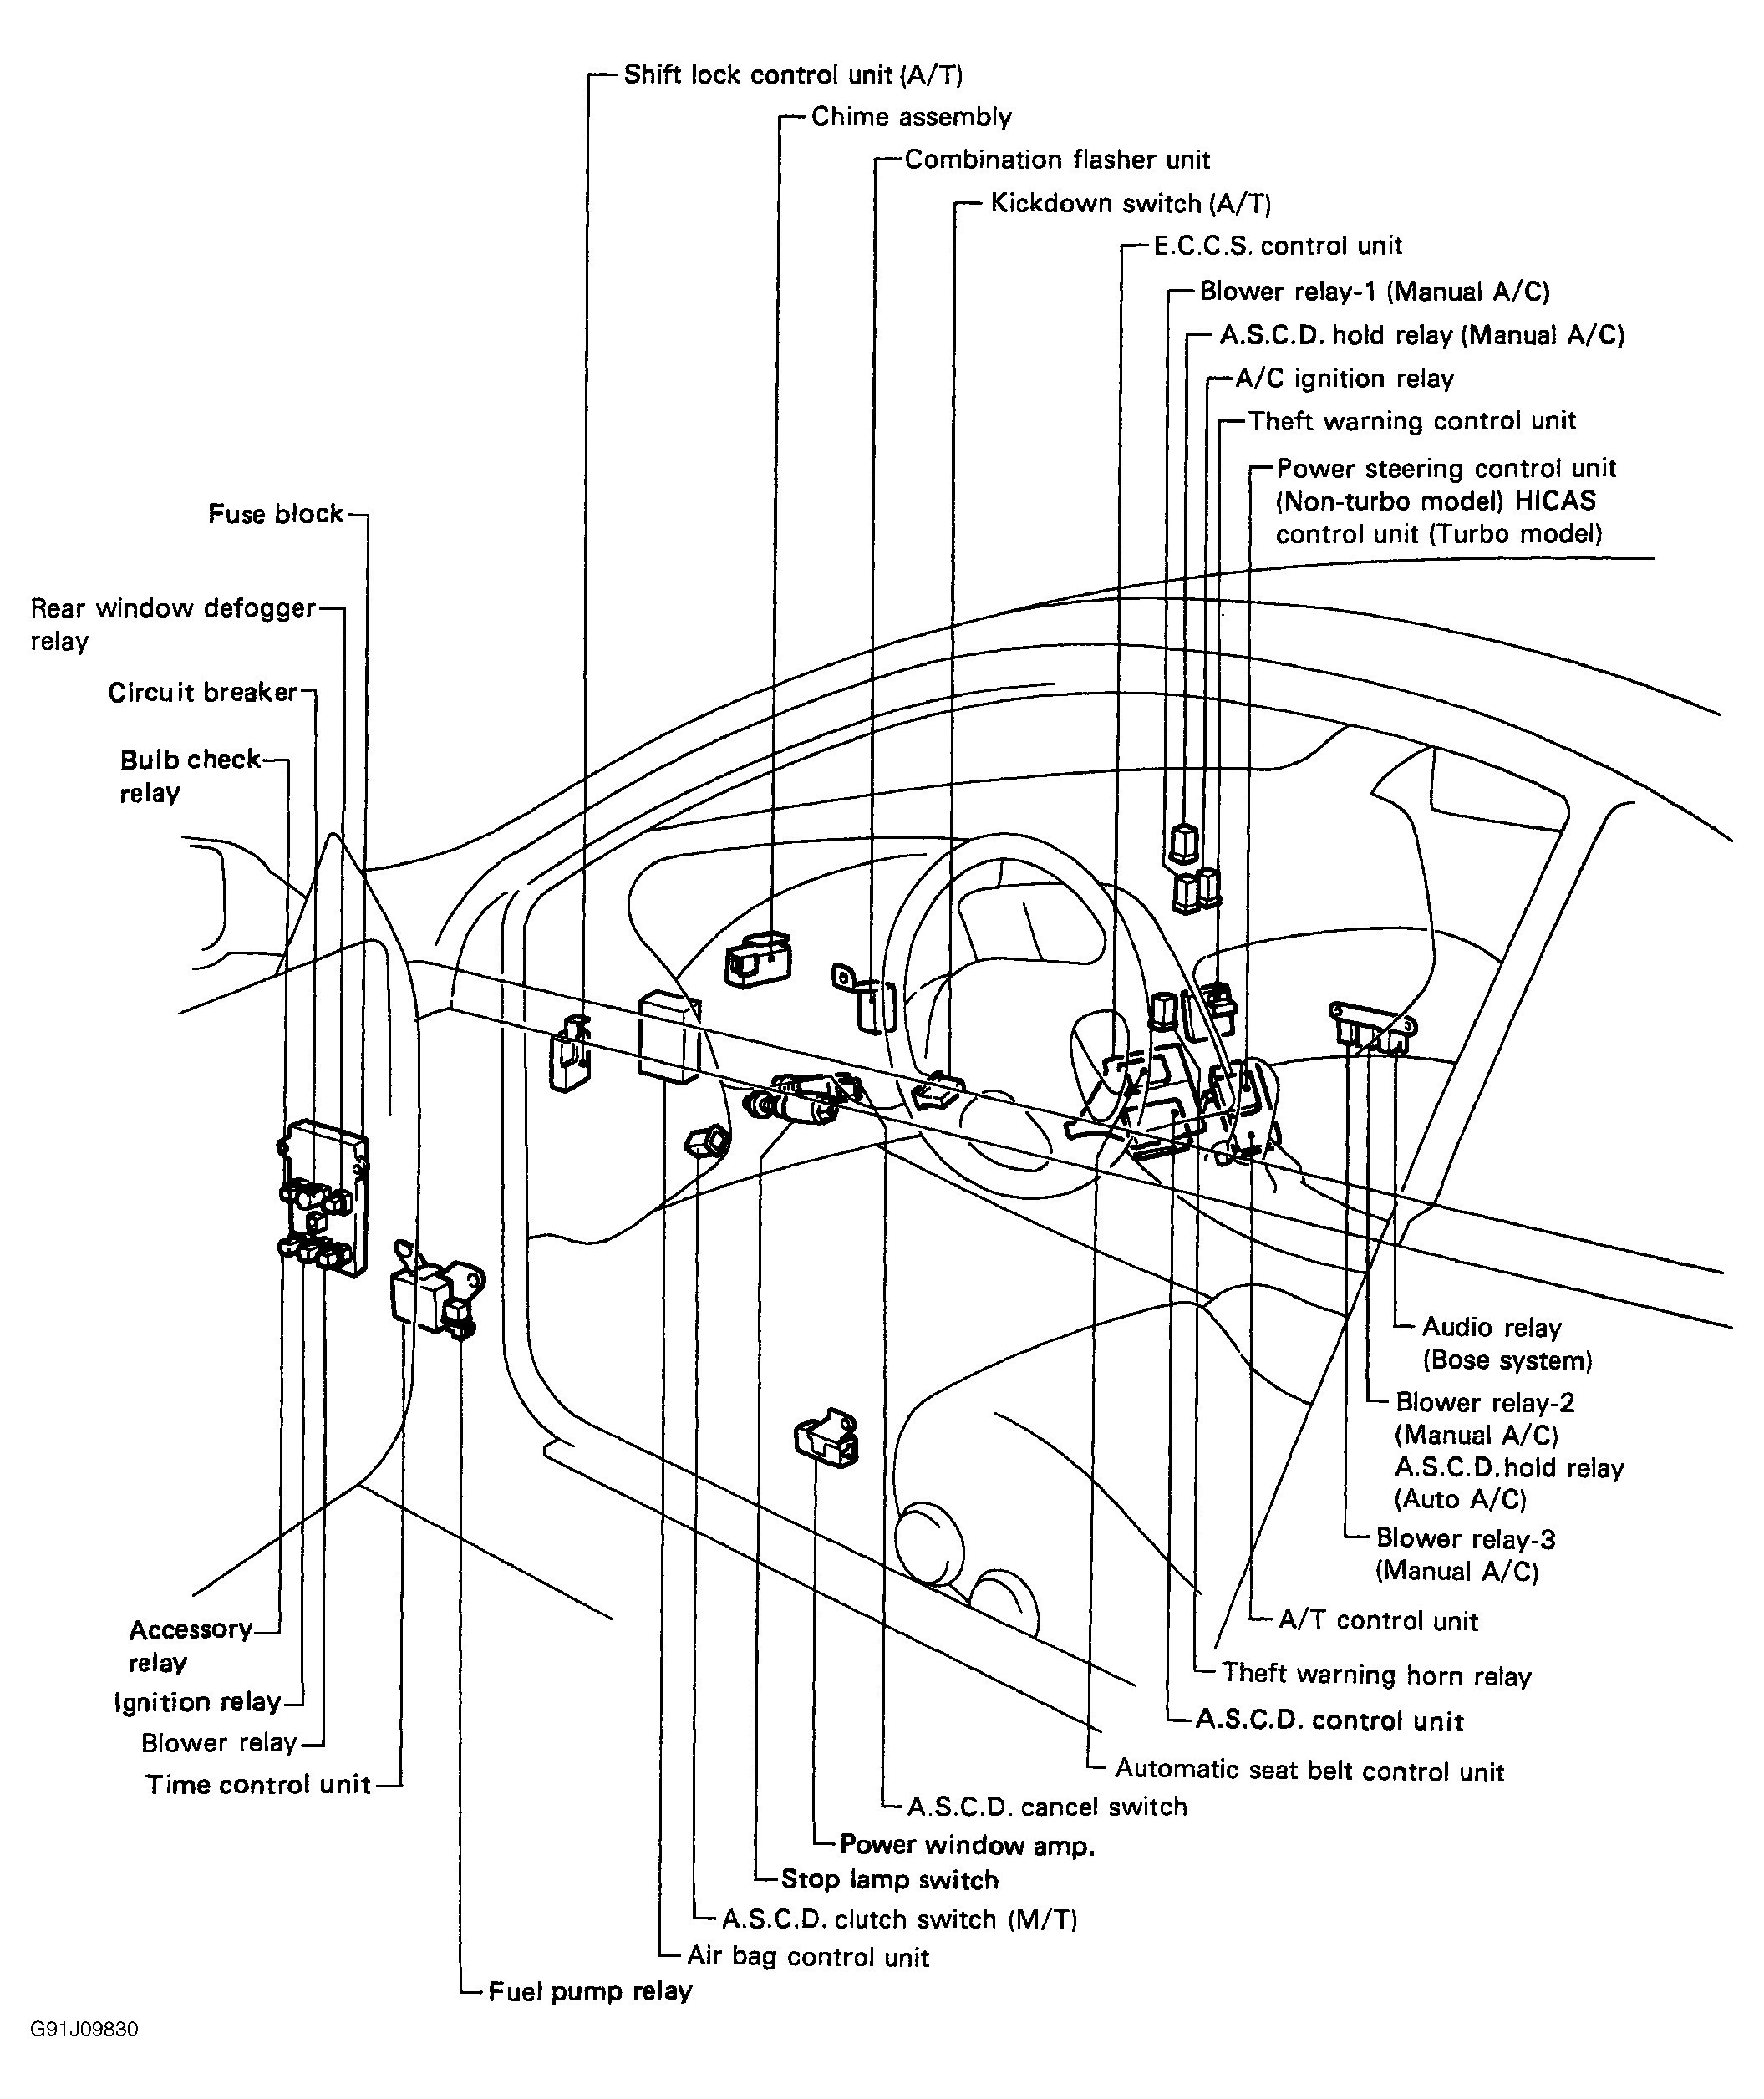 Nissan Hardbody Alternator Wiring Diagram